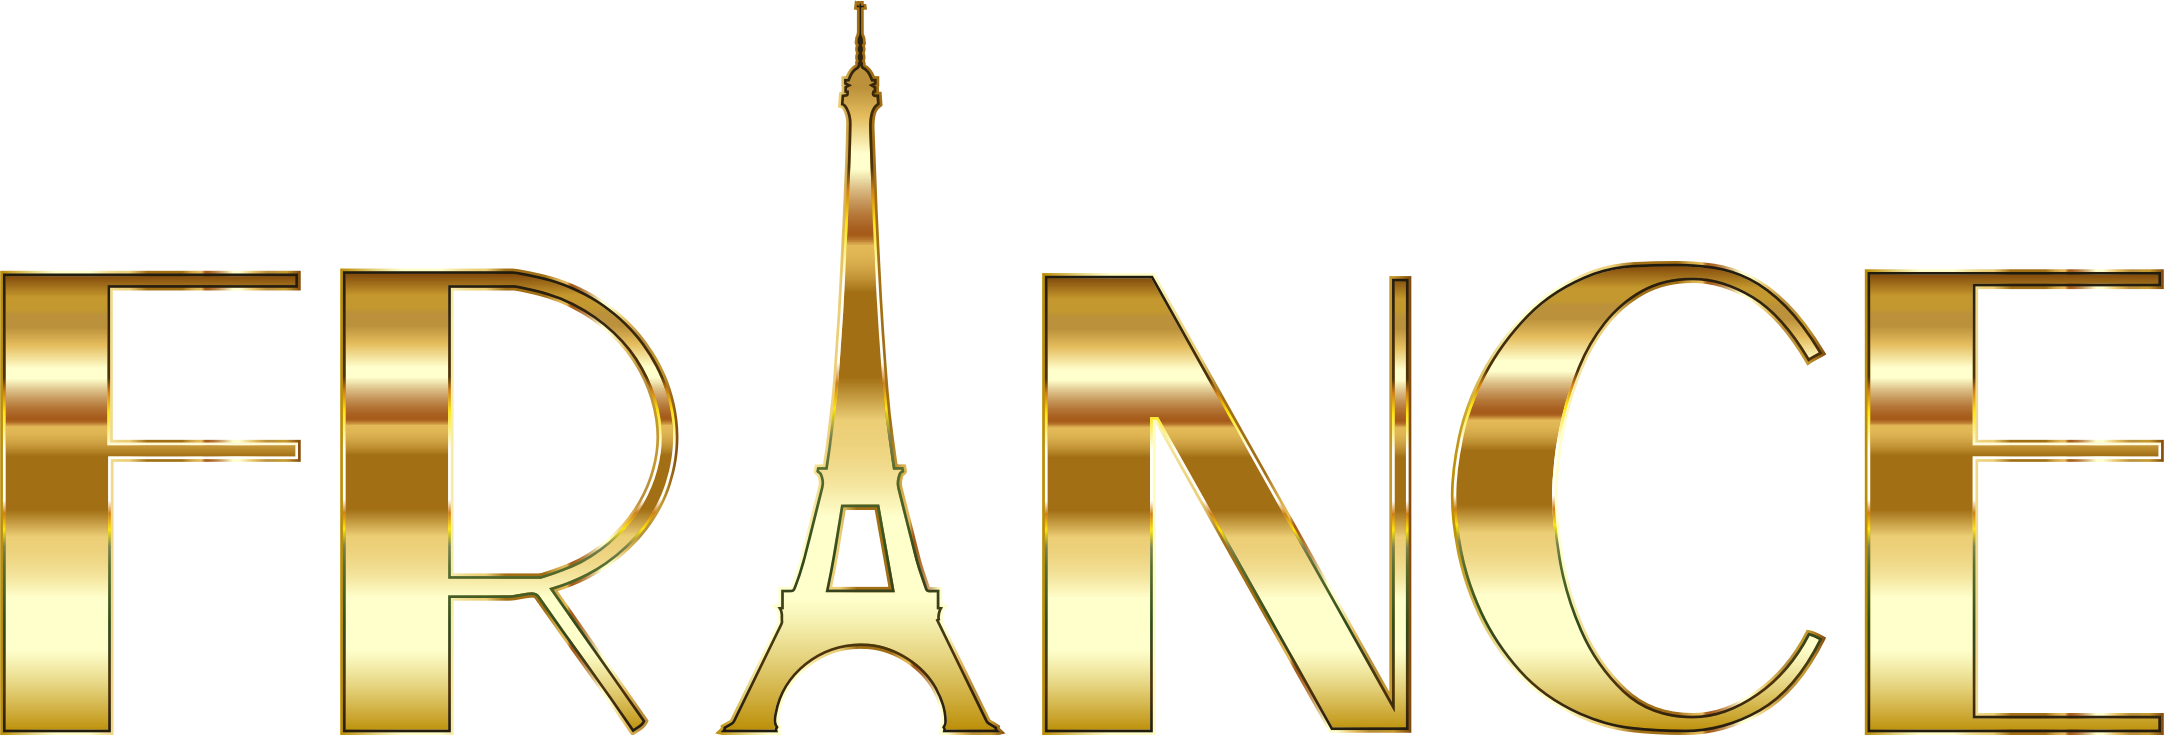 France clipart. Typography gold big image